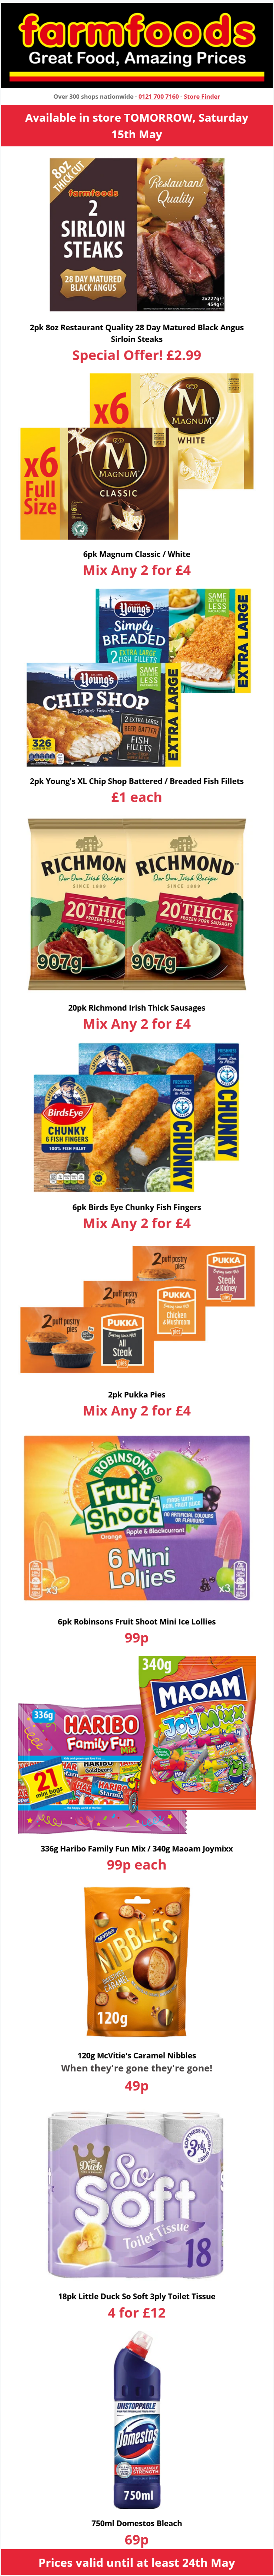 Farmfoods Offers Valid until at least 24th May 2021